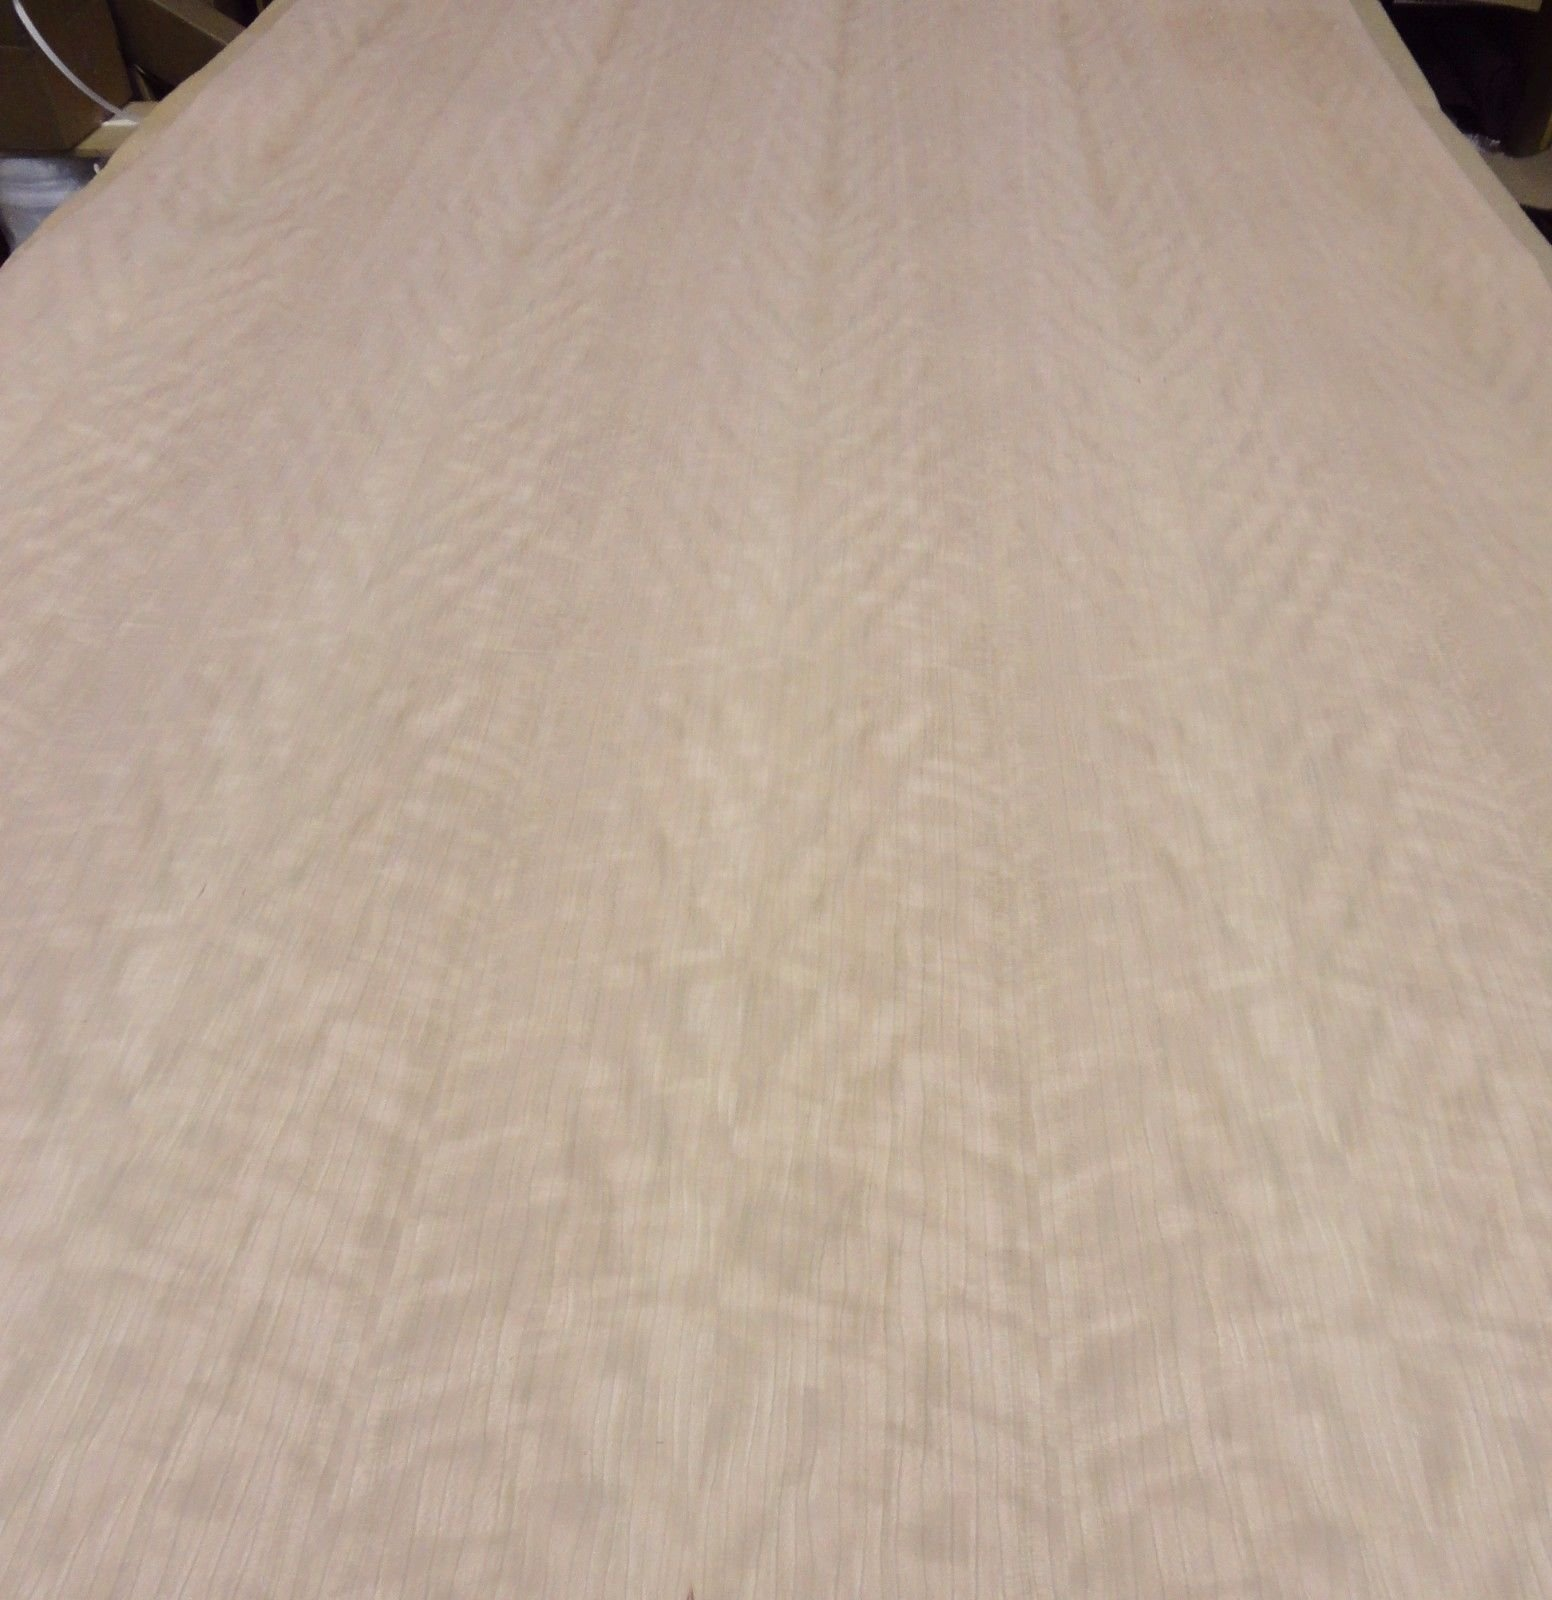 Figured Quilted Ropey Cherry wood veneer 48'' x 96'' on paper backer 1/40th'' ''AA+''